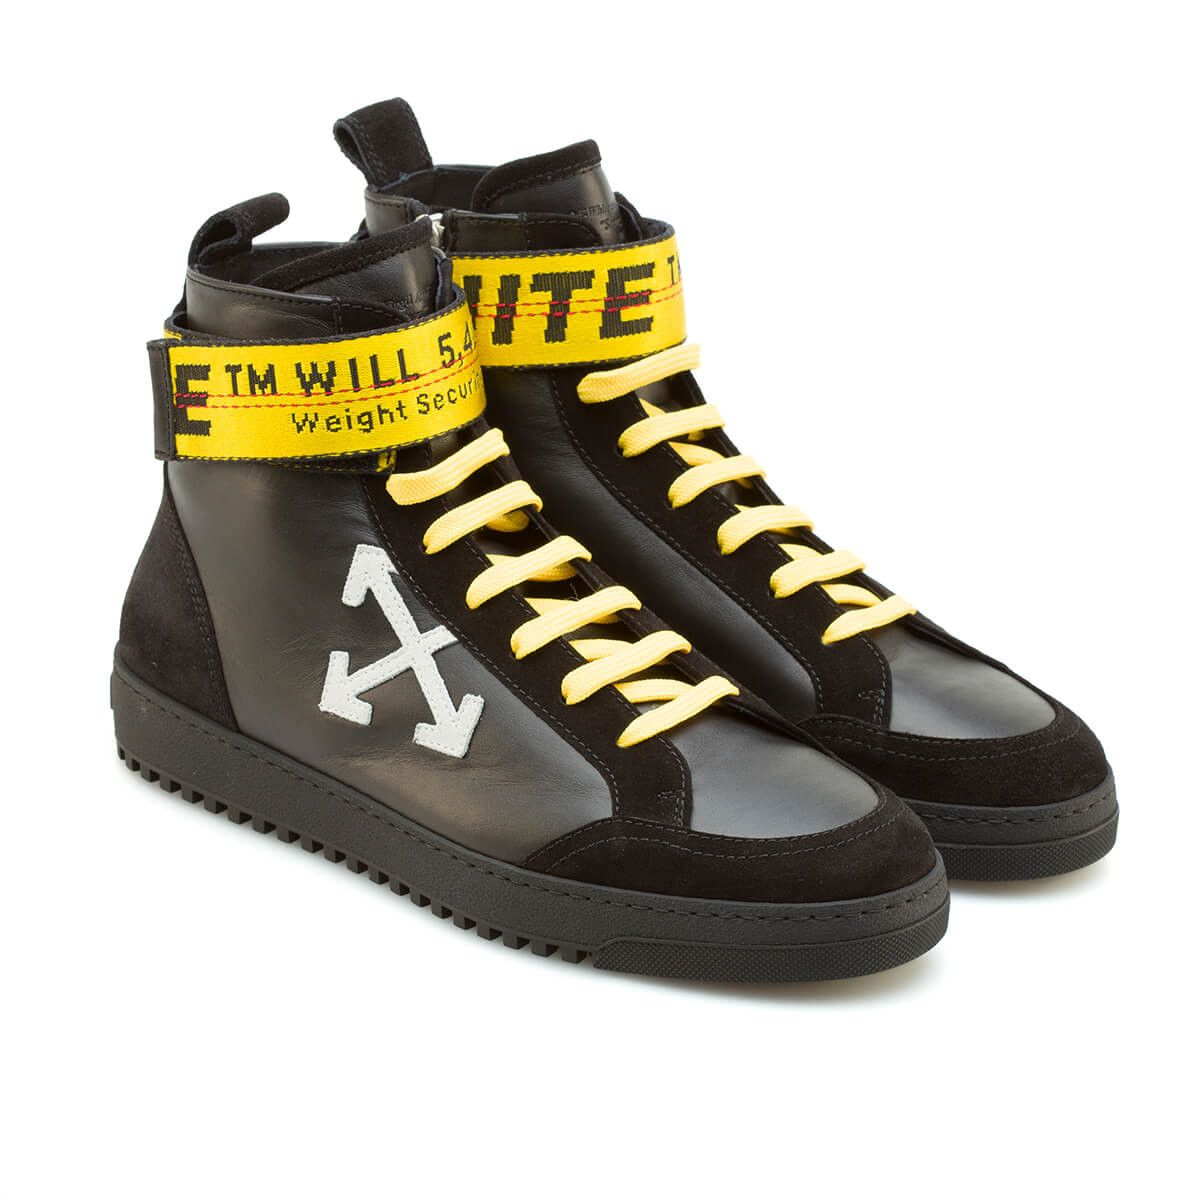 new product 58454 57378 High-top sneakers from the F W2017-18 Off-White c o Virgil Abloh collection  in black